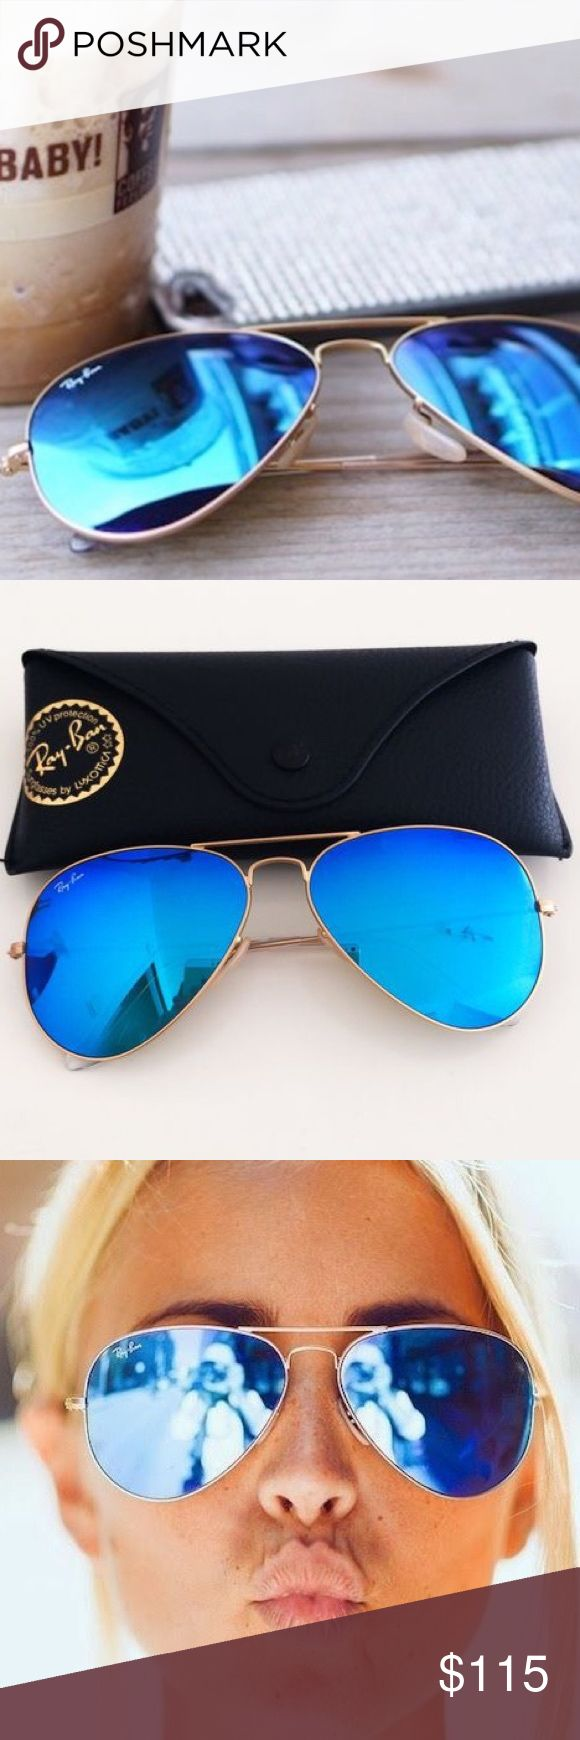 8924e2fafac06 ray ban aviador espelhado azul ray ban new wayfarer lens color